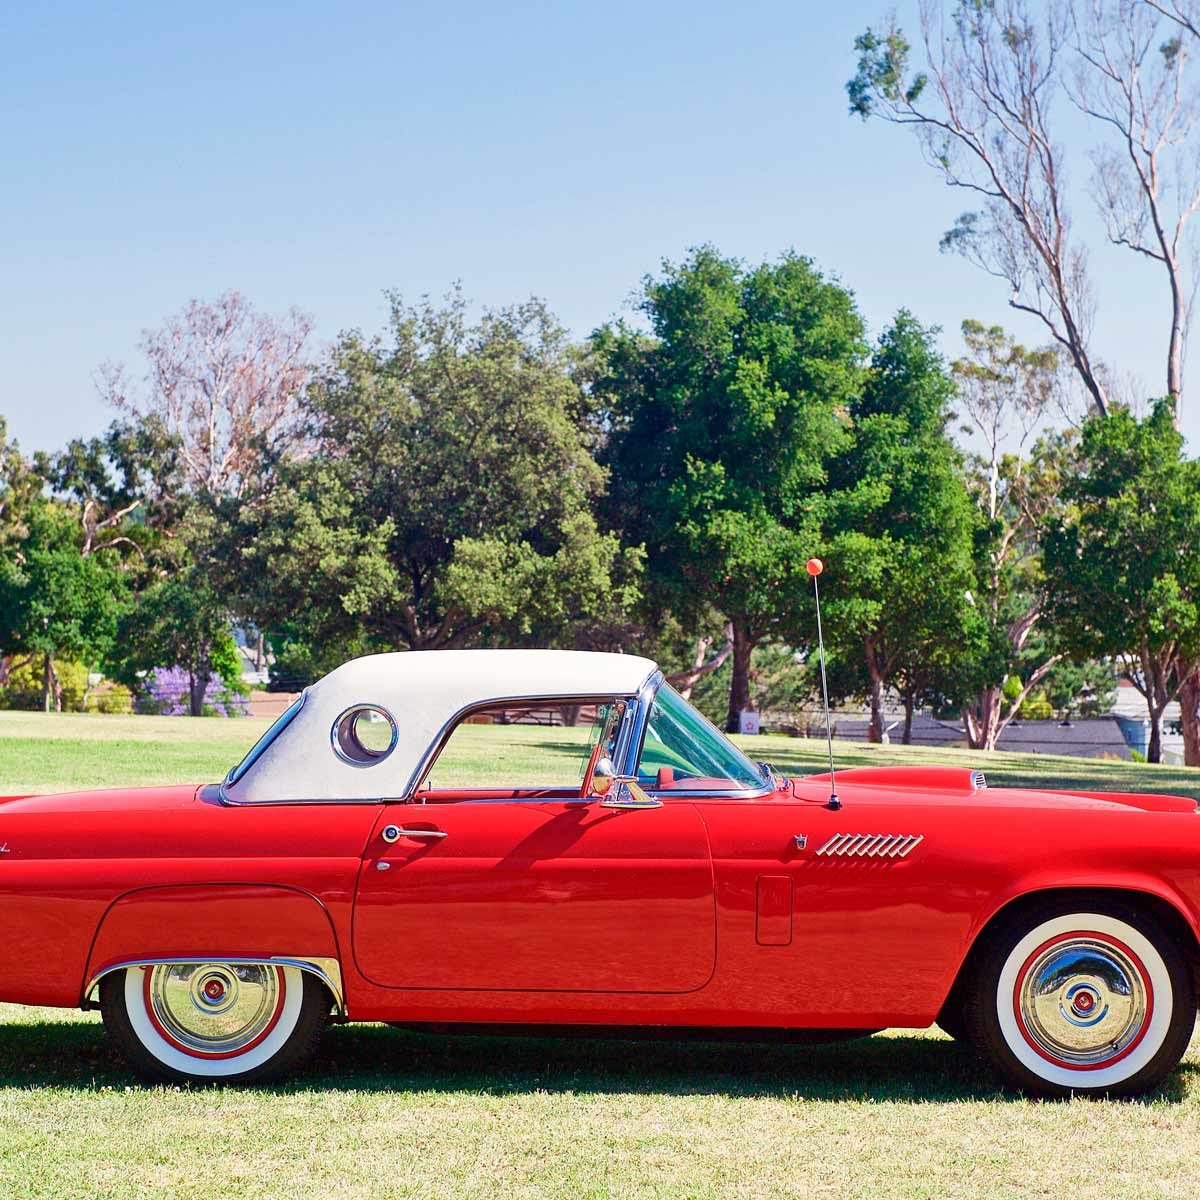 Classic Ford Thunderbird parked at a gathering of like minded classic car enthusiasts at a park in Fullerton, California